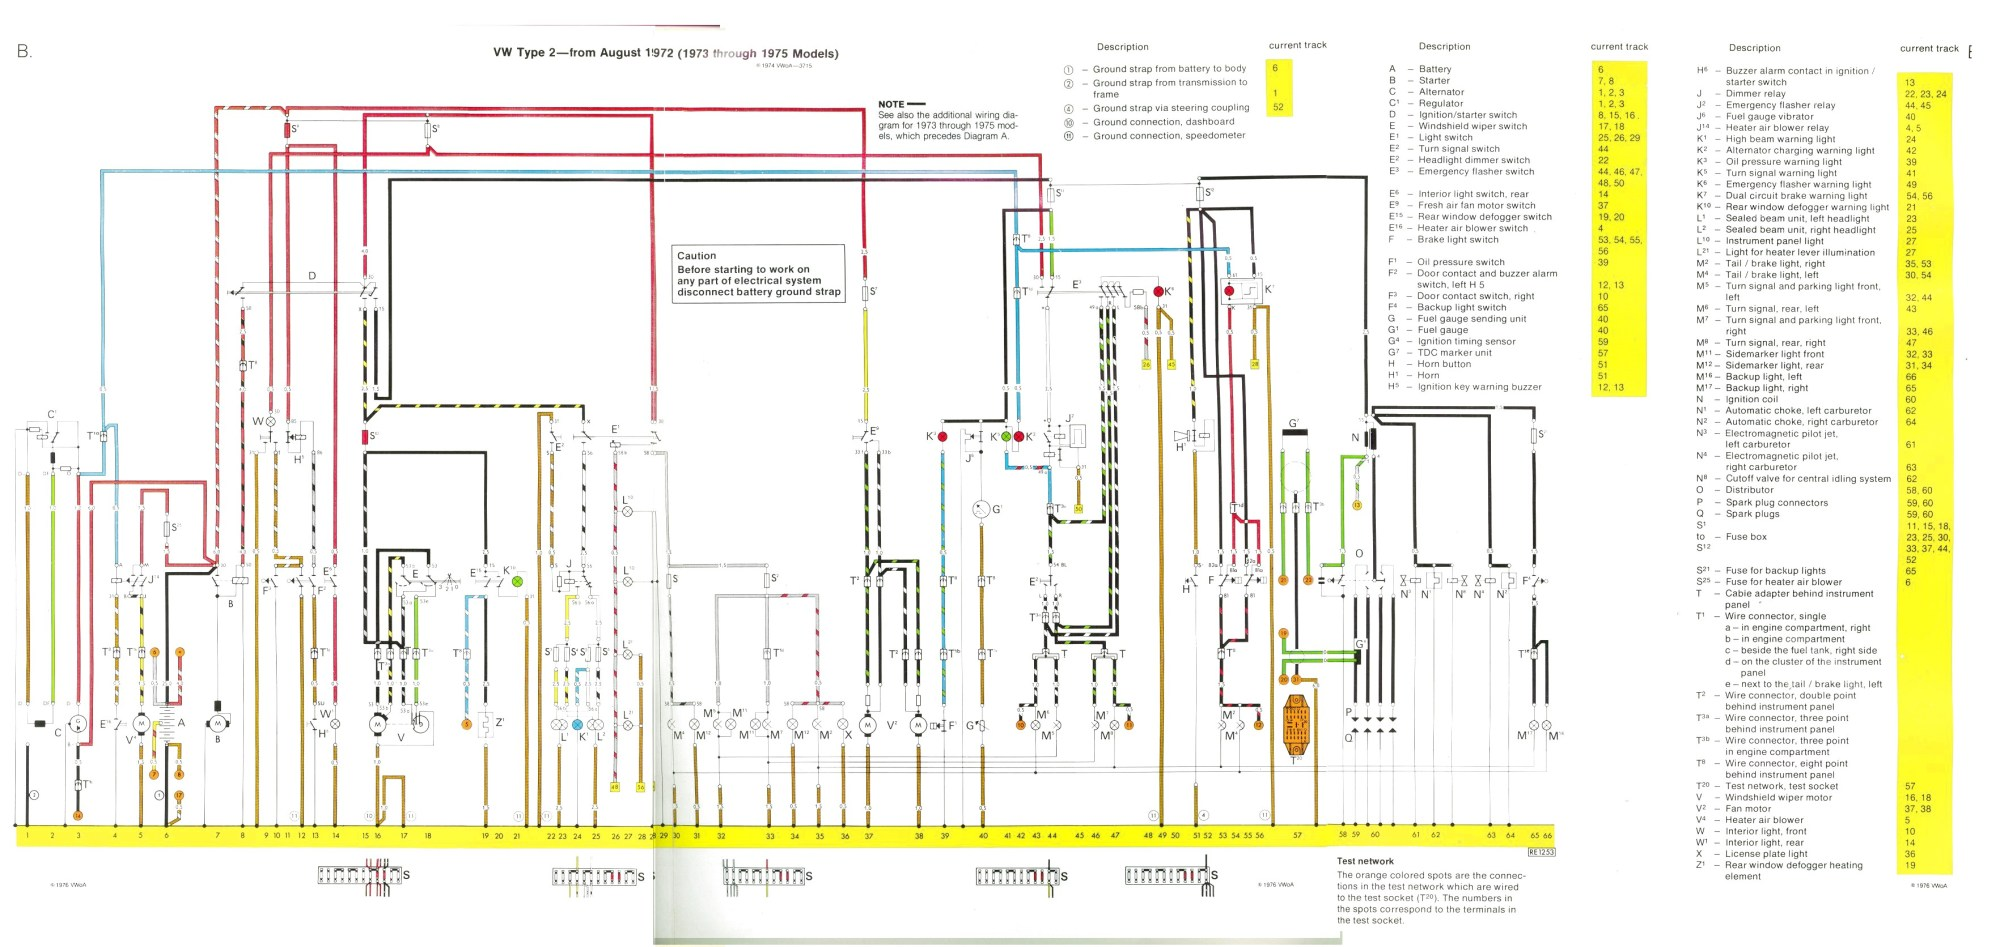 hight resolution of baywindow fusebox layout 2013 vw passat fuse schematic august 1972 1973 through 1975 models